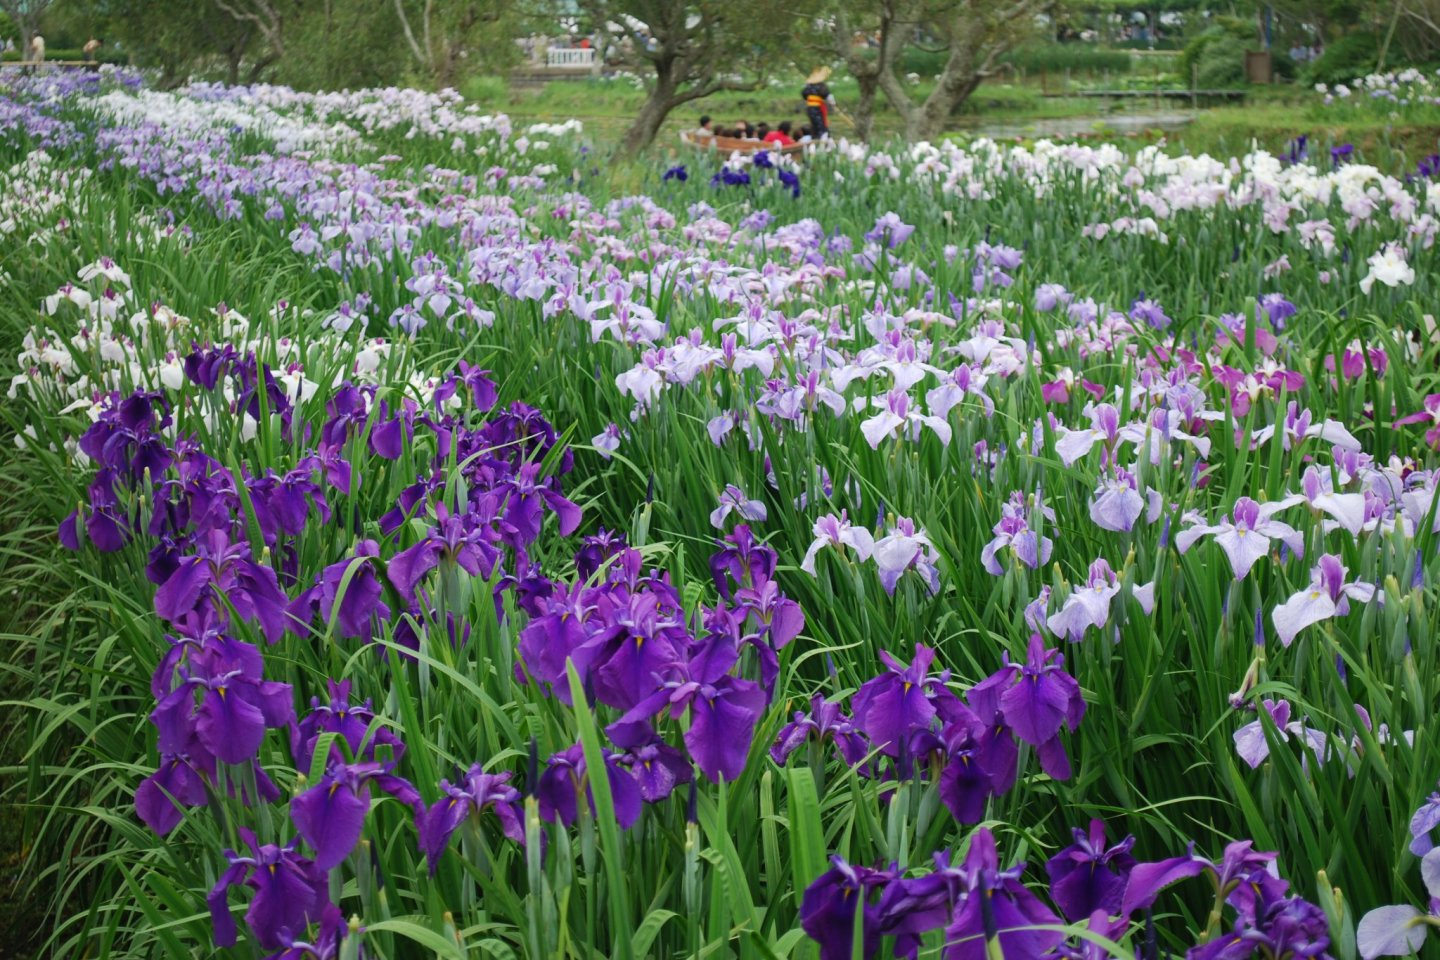 Just some of the 1.5 million irises you\'ll find here!